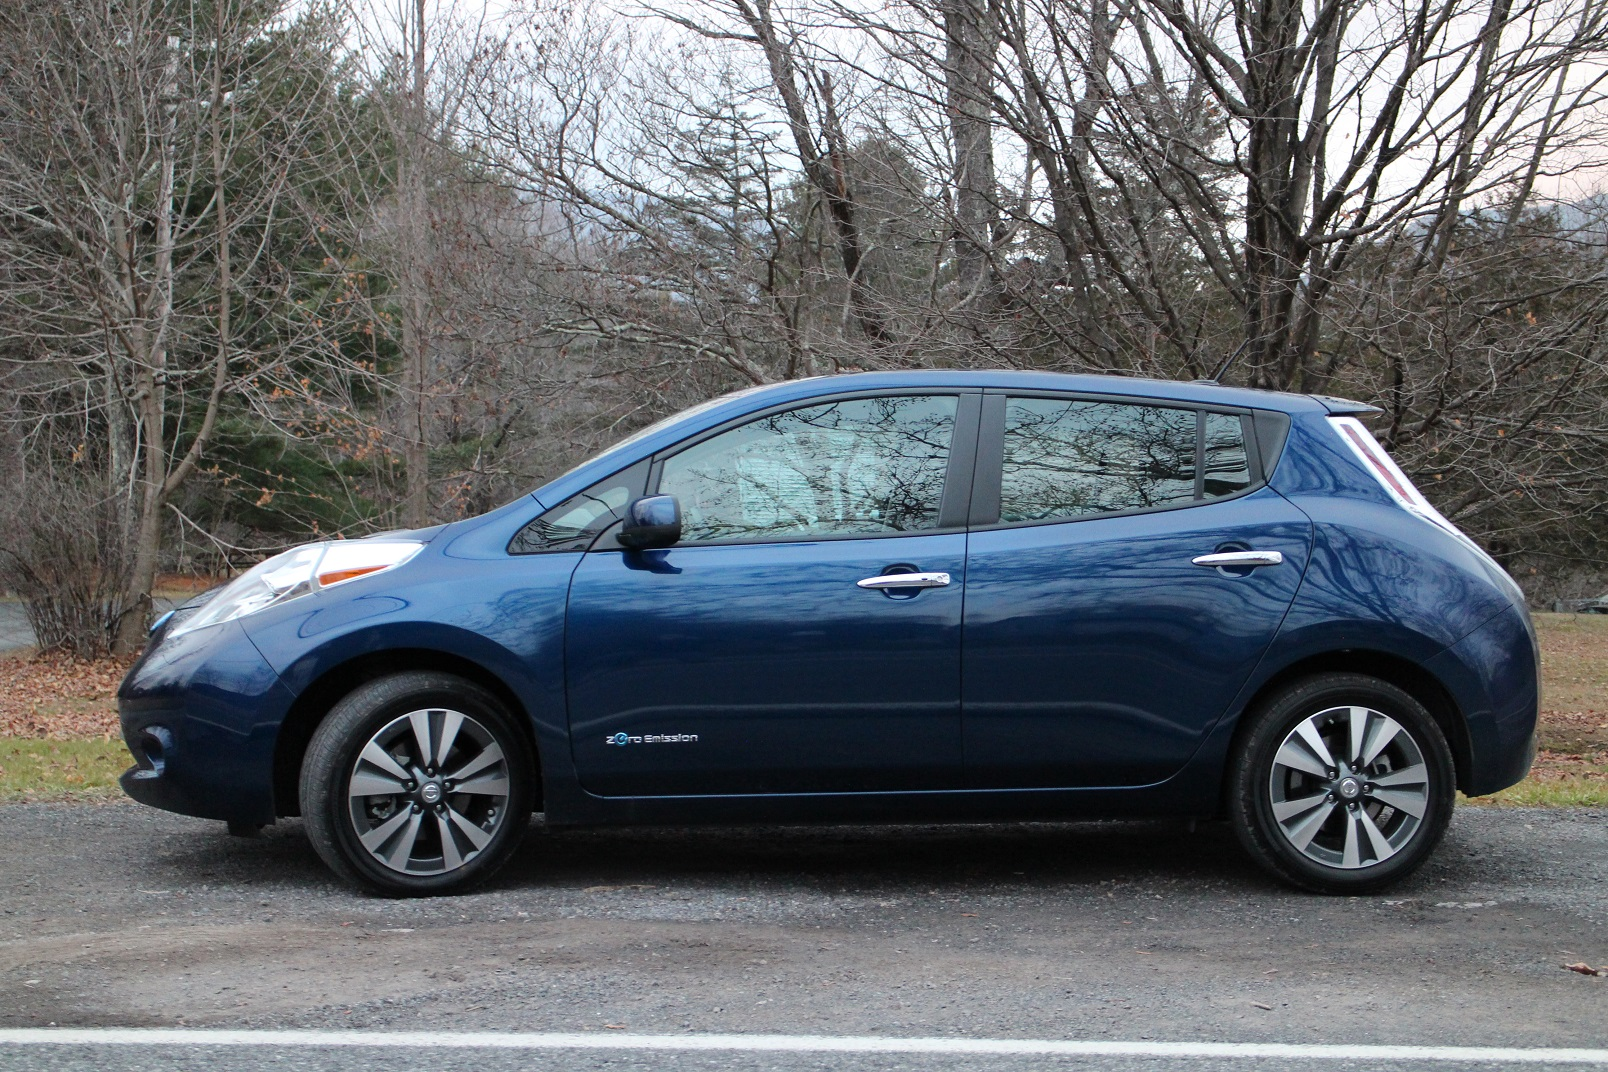 Nissan San Francisco >> 2016 Nissan Leaf group buy in Montreal signs up 2,800 for low price on electric car